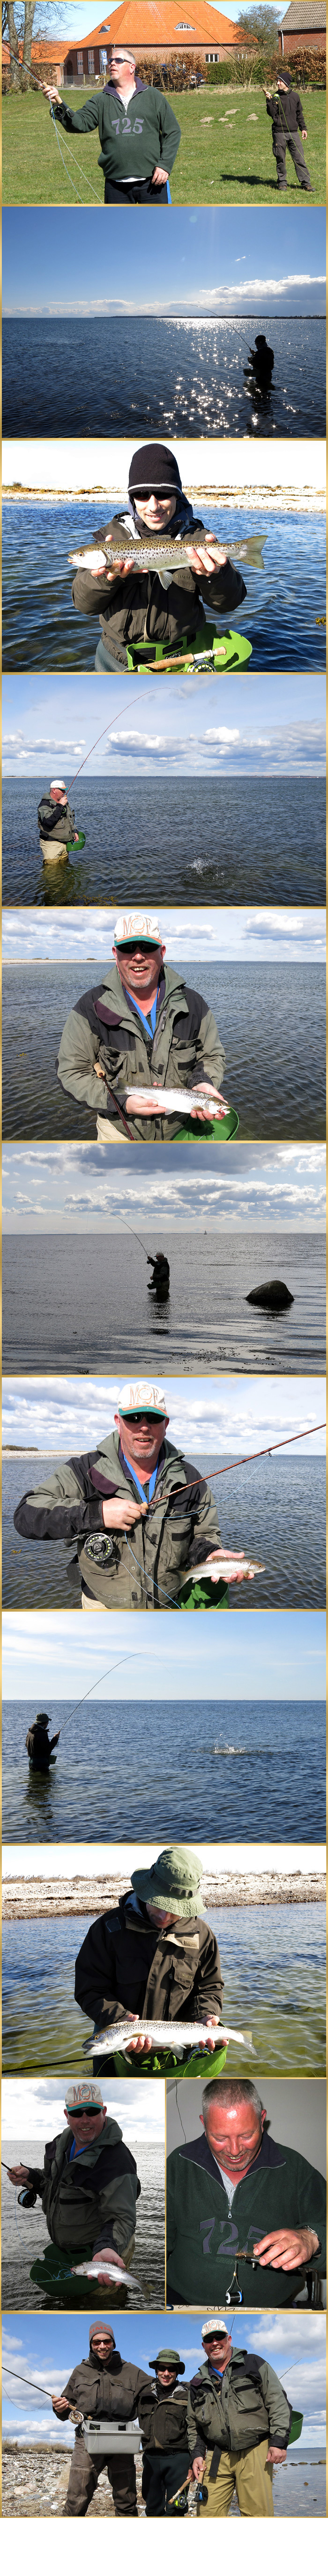 fly fishing for Sea trou